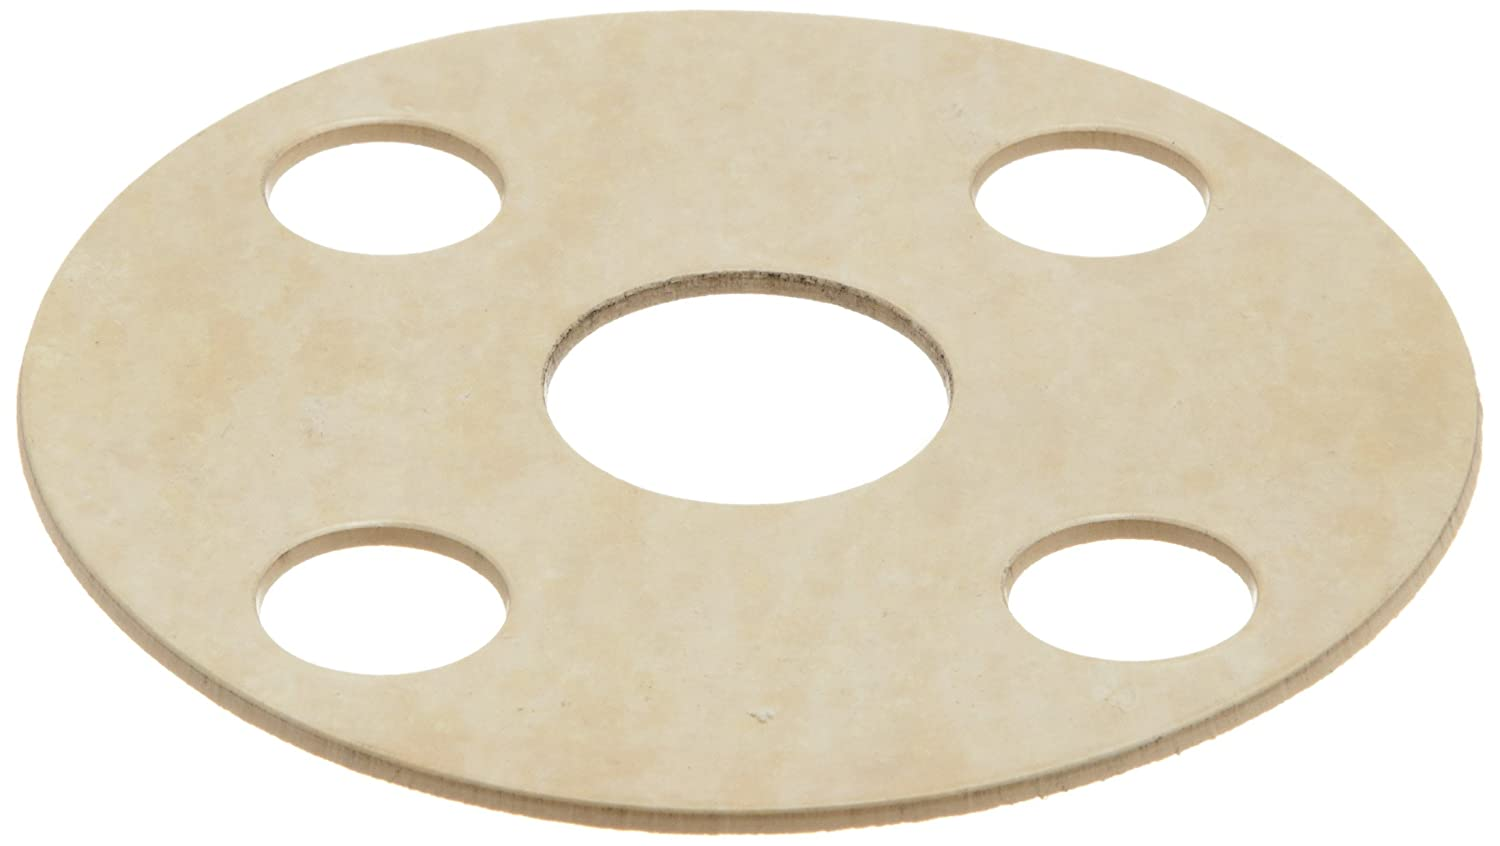 USA Sealing Inc-Full Face Silicone Flange Gasket for 2 Pipe-1//16T-Class 150